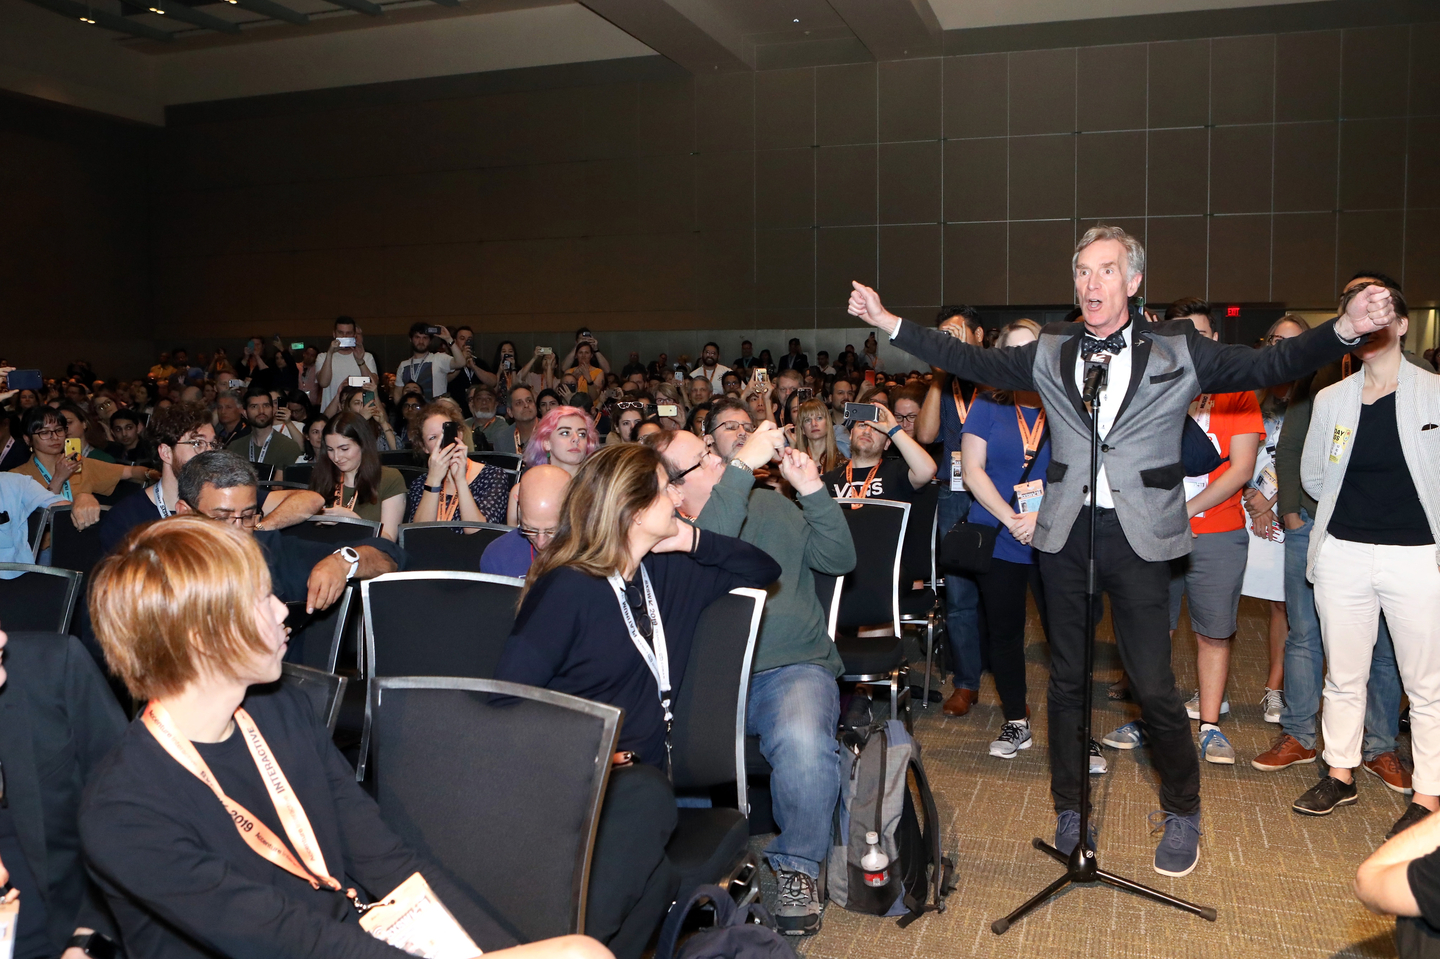 Bill Nye asks Alexandria Ocasio-Cortez a question from the audience. Photo by Samantha Burkardt/Getty Images for SXSW